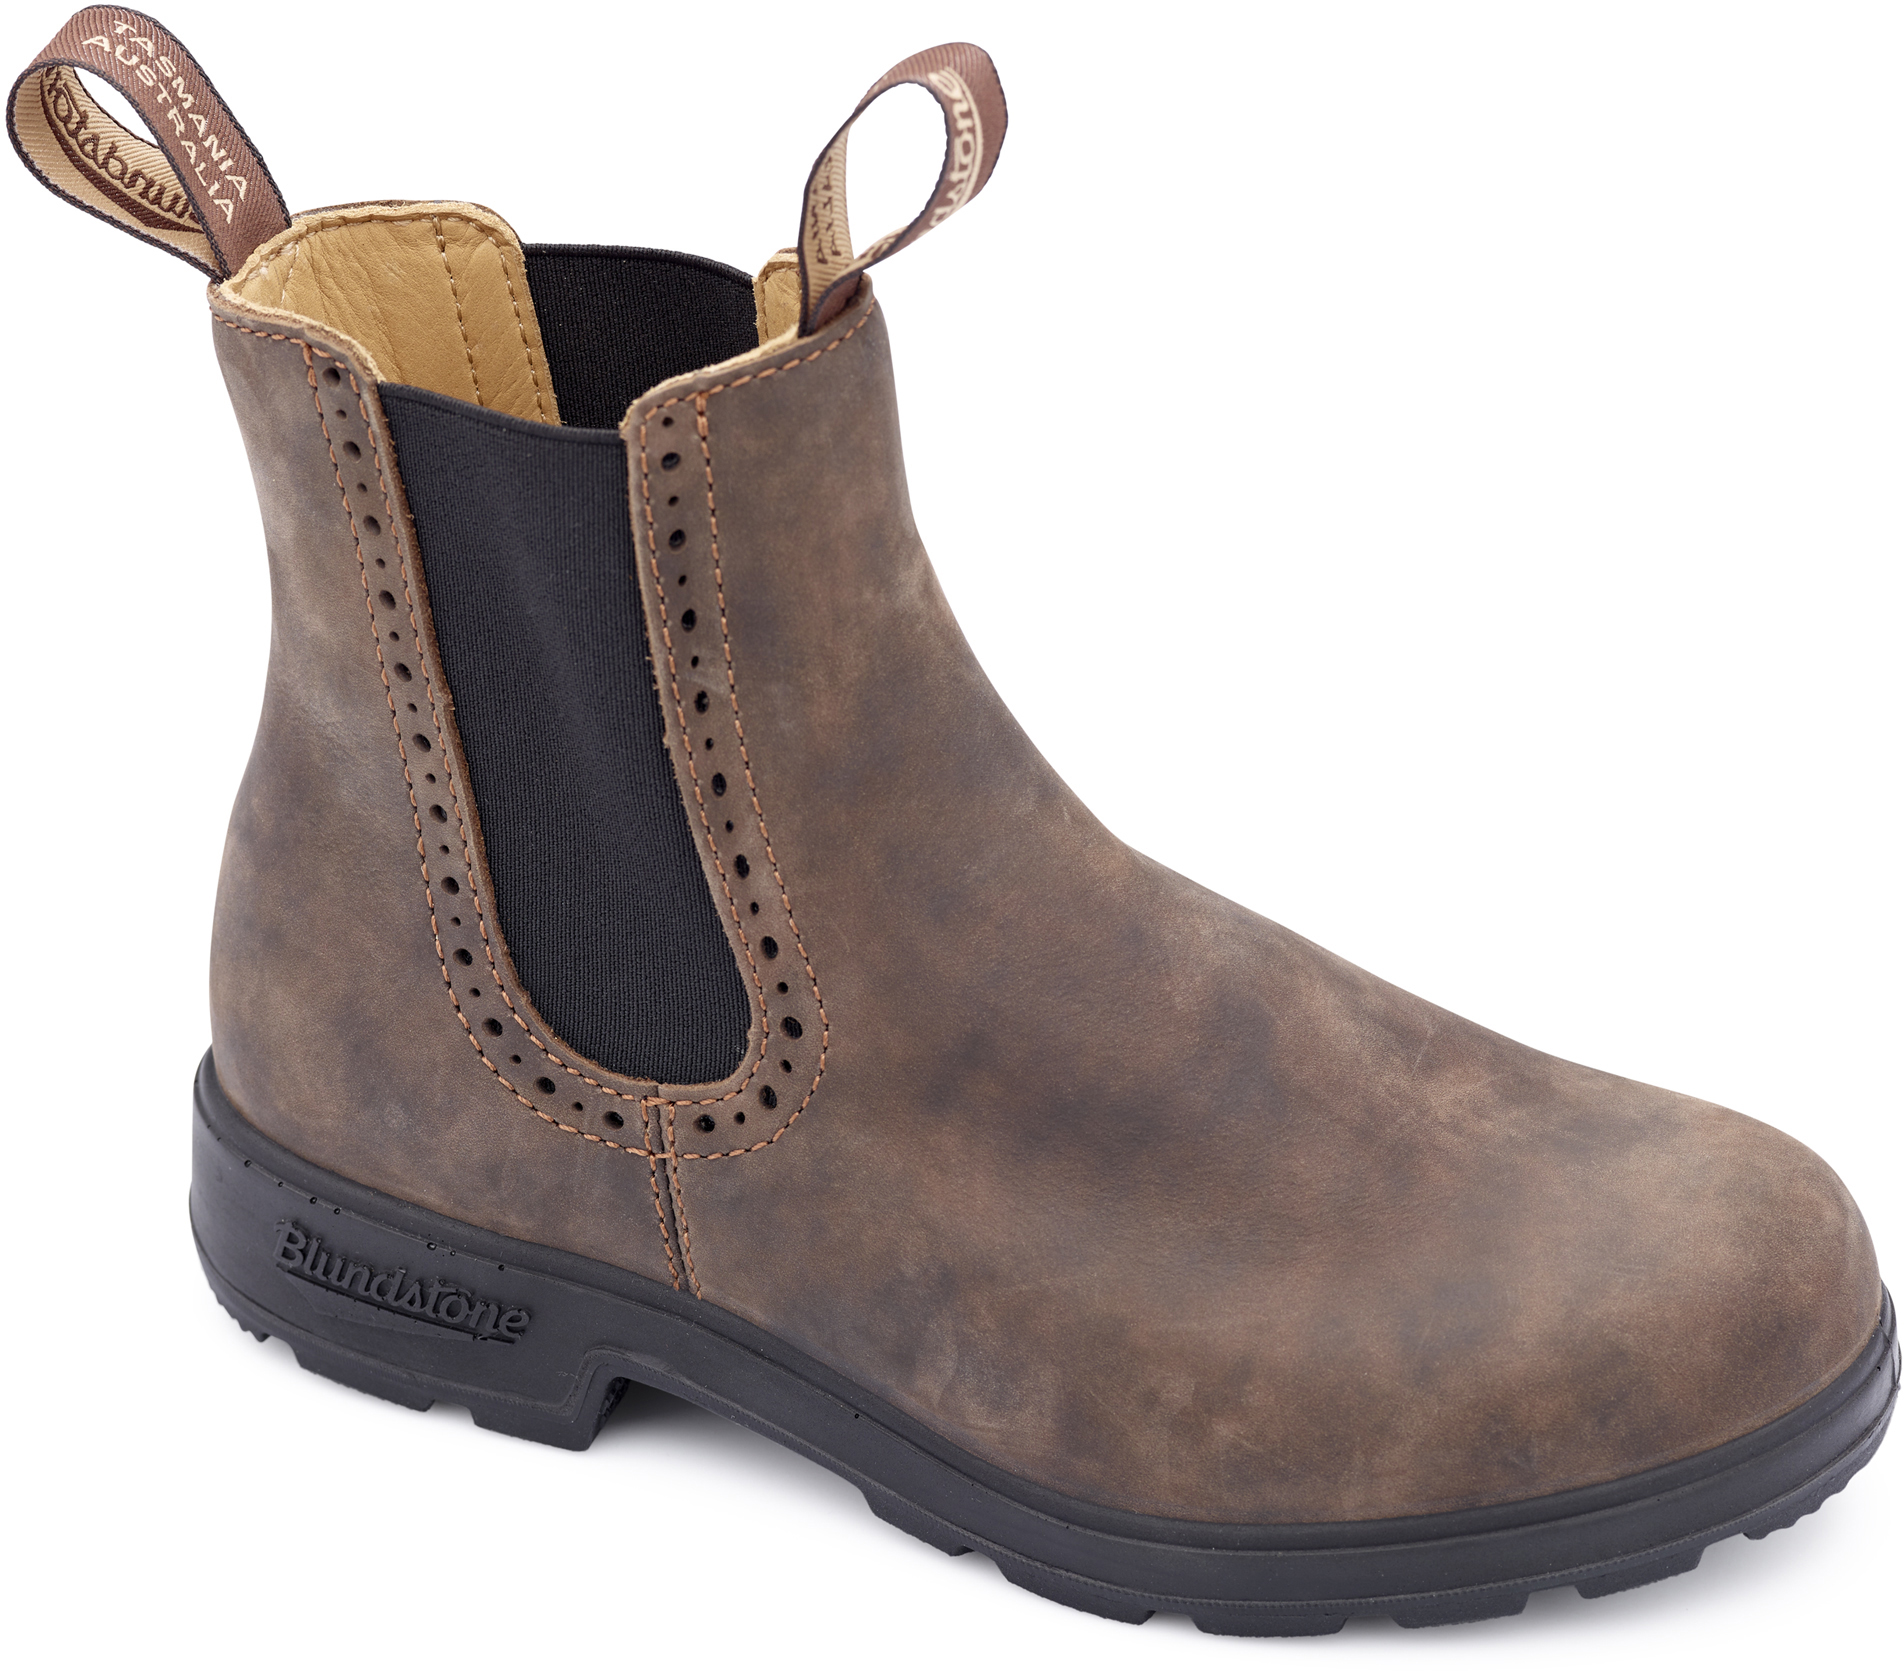 Stout Boots Homme Blundstone Marron 062 zVGqpSMLU